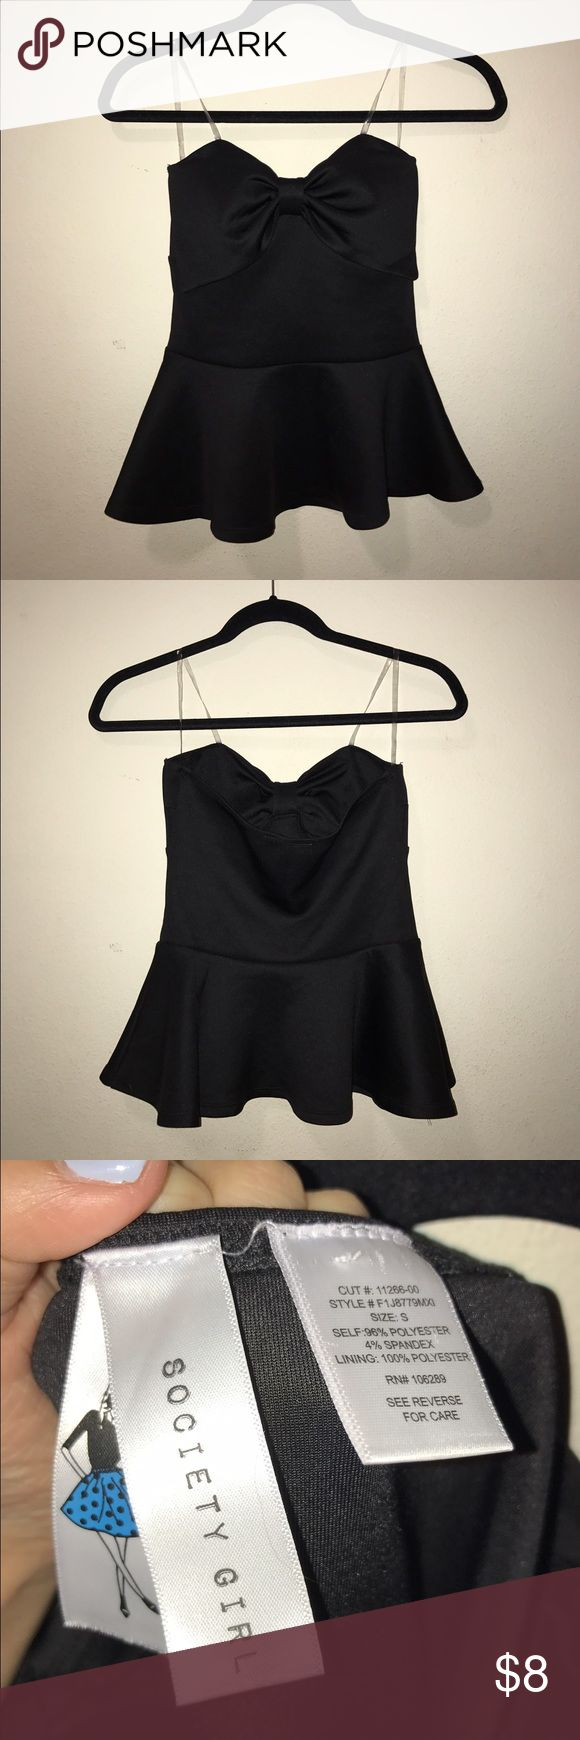 NWOT Strapless black peplum top with bow NWOT black bow peplum top!! Super chic and very flattering!! There are no flaws and it is strapless so it is perfect for a night out or casual but chic wear. Very slimming too. The brand is society girl. Size small, and you might wanna be either b or c cup to fill this out!! Beautiful material. Only selling because I realized it doesn't fit with anything in my wardrobe :( Price negotiable, only reasonable offers, wanna sell asap society girl Tops…